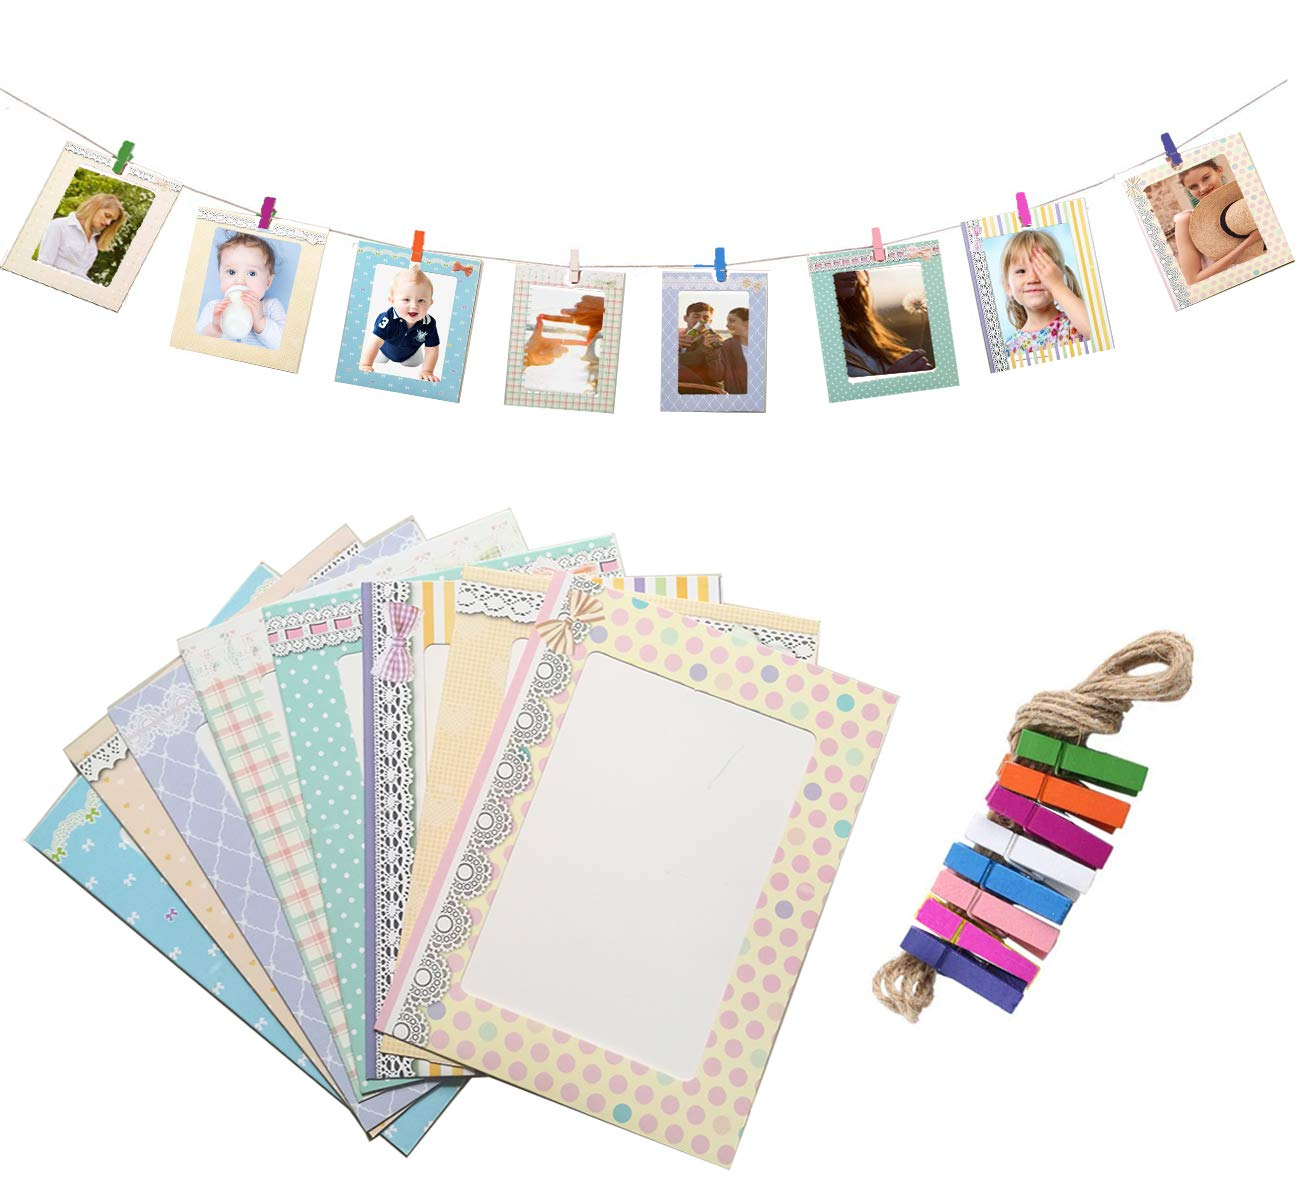 8pcs Hanging Paper Photo Frames Wall Decoration DIY with Clips and Ropes for 4x6in Pictures